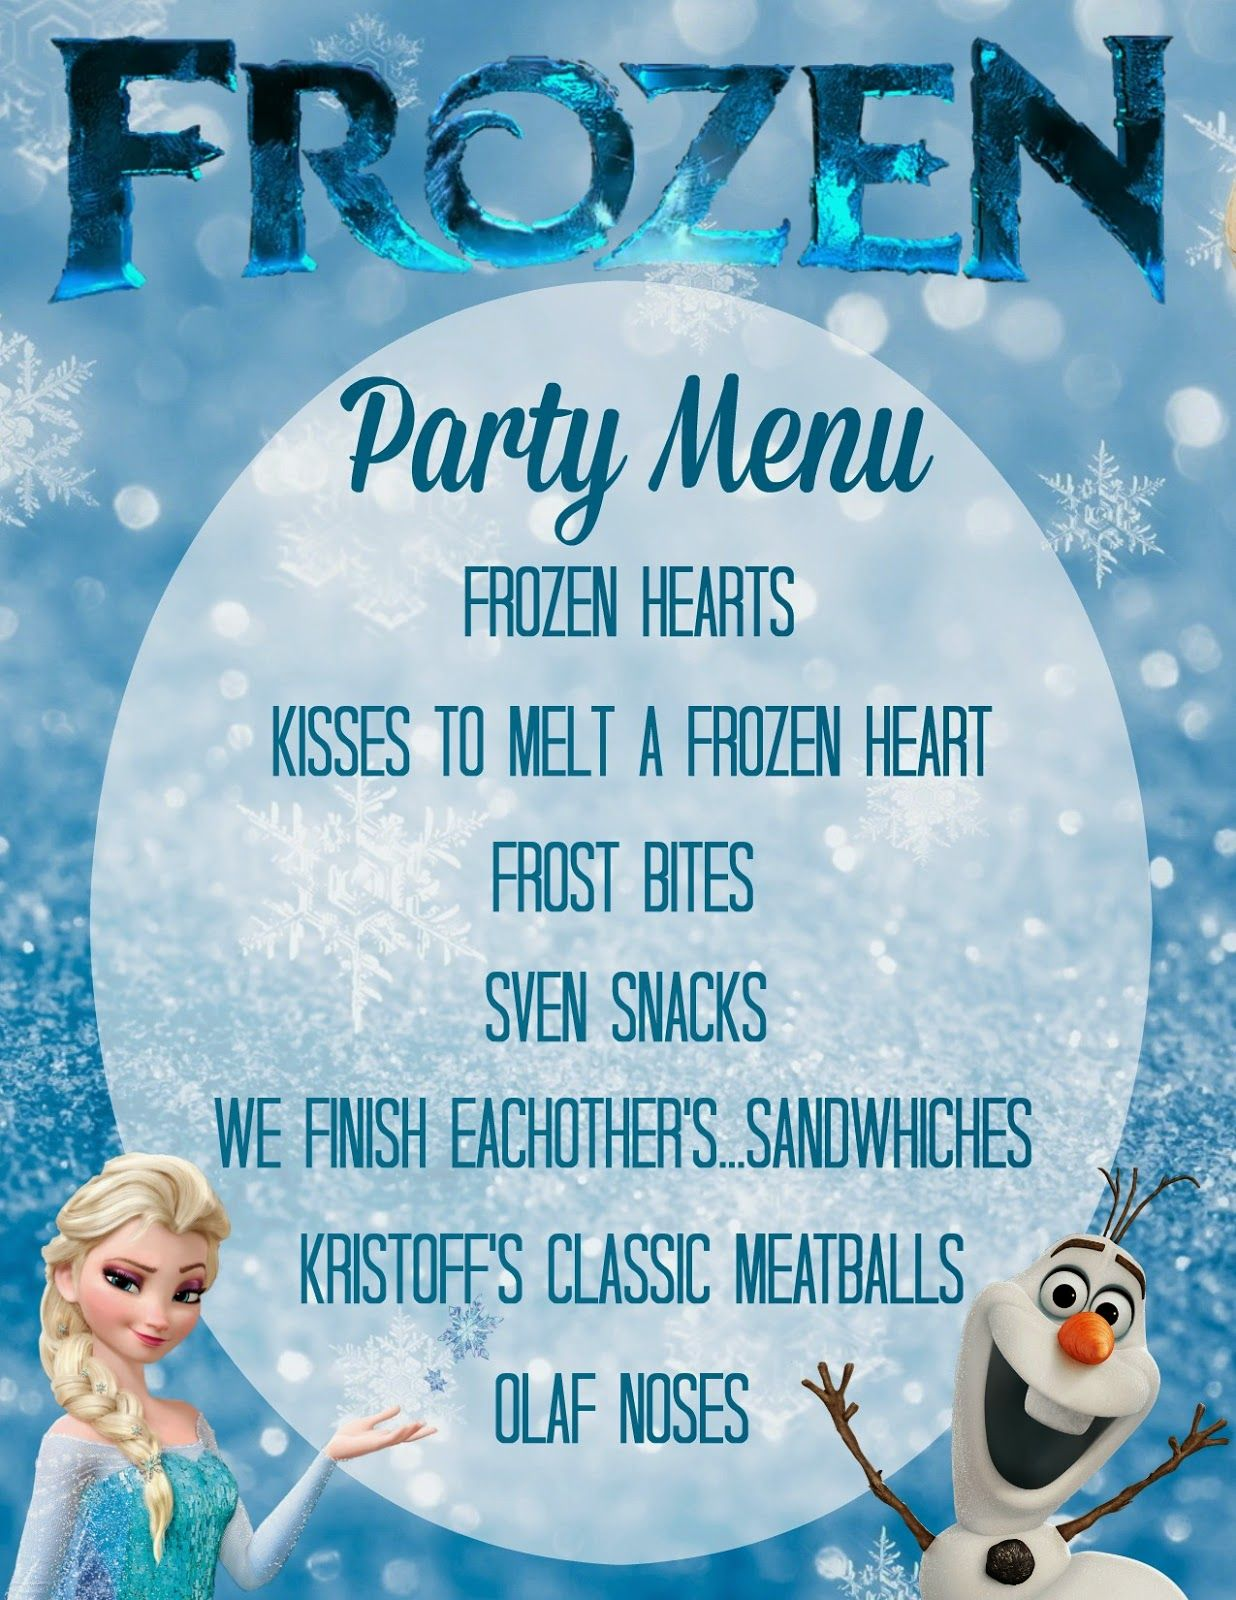 FREE Frozen Party Menu download + Party Ideas and Inspiration ...